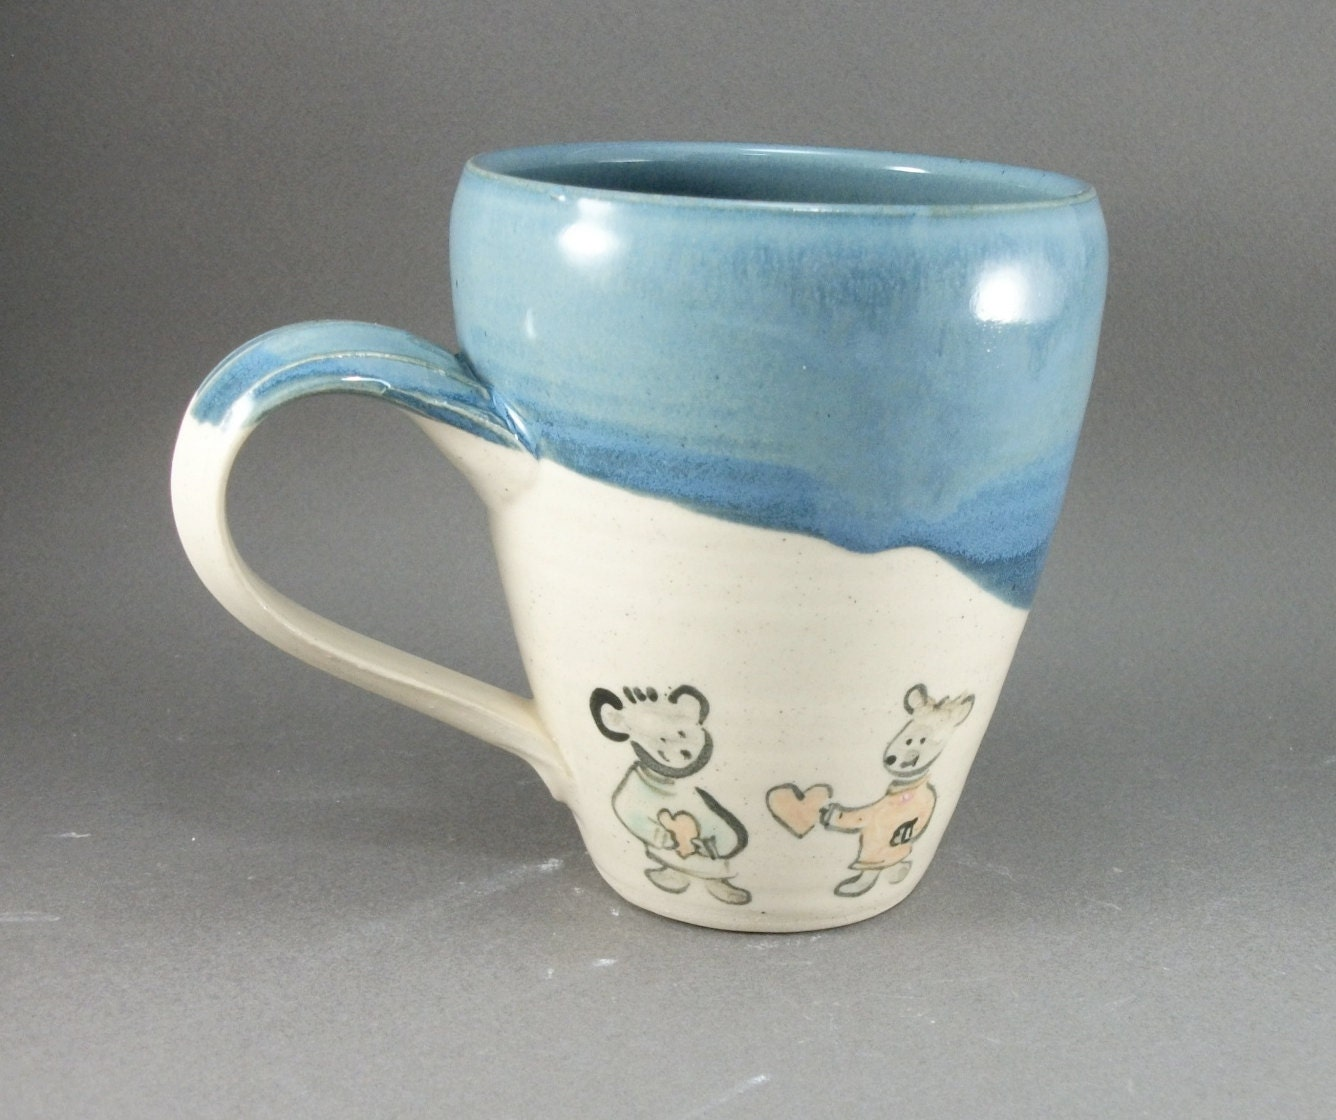 teddy bears and hearts mug